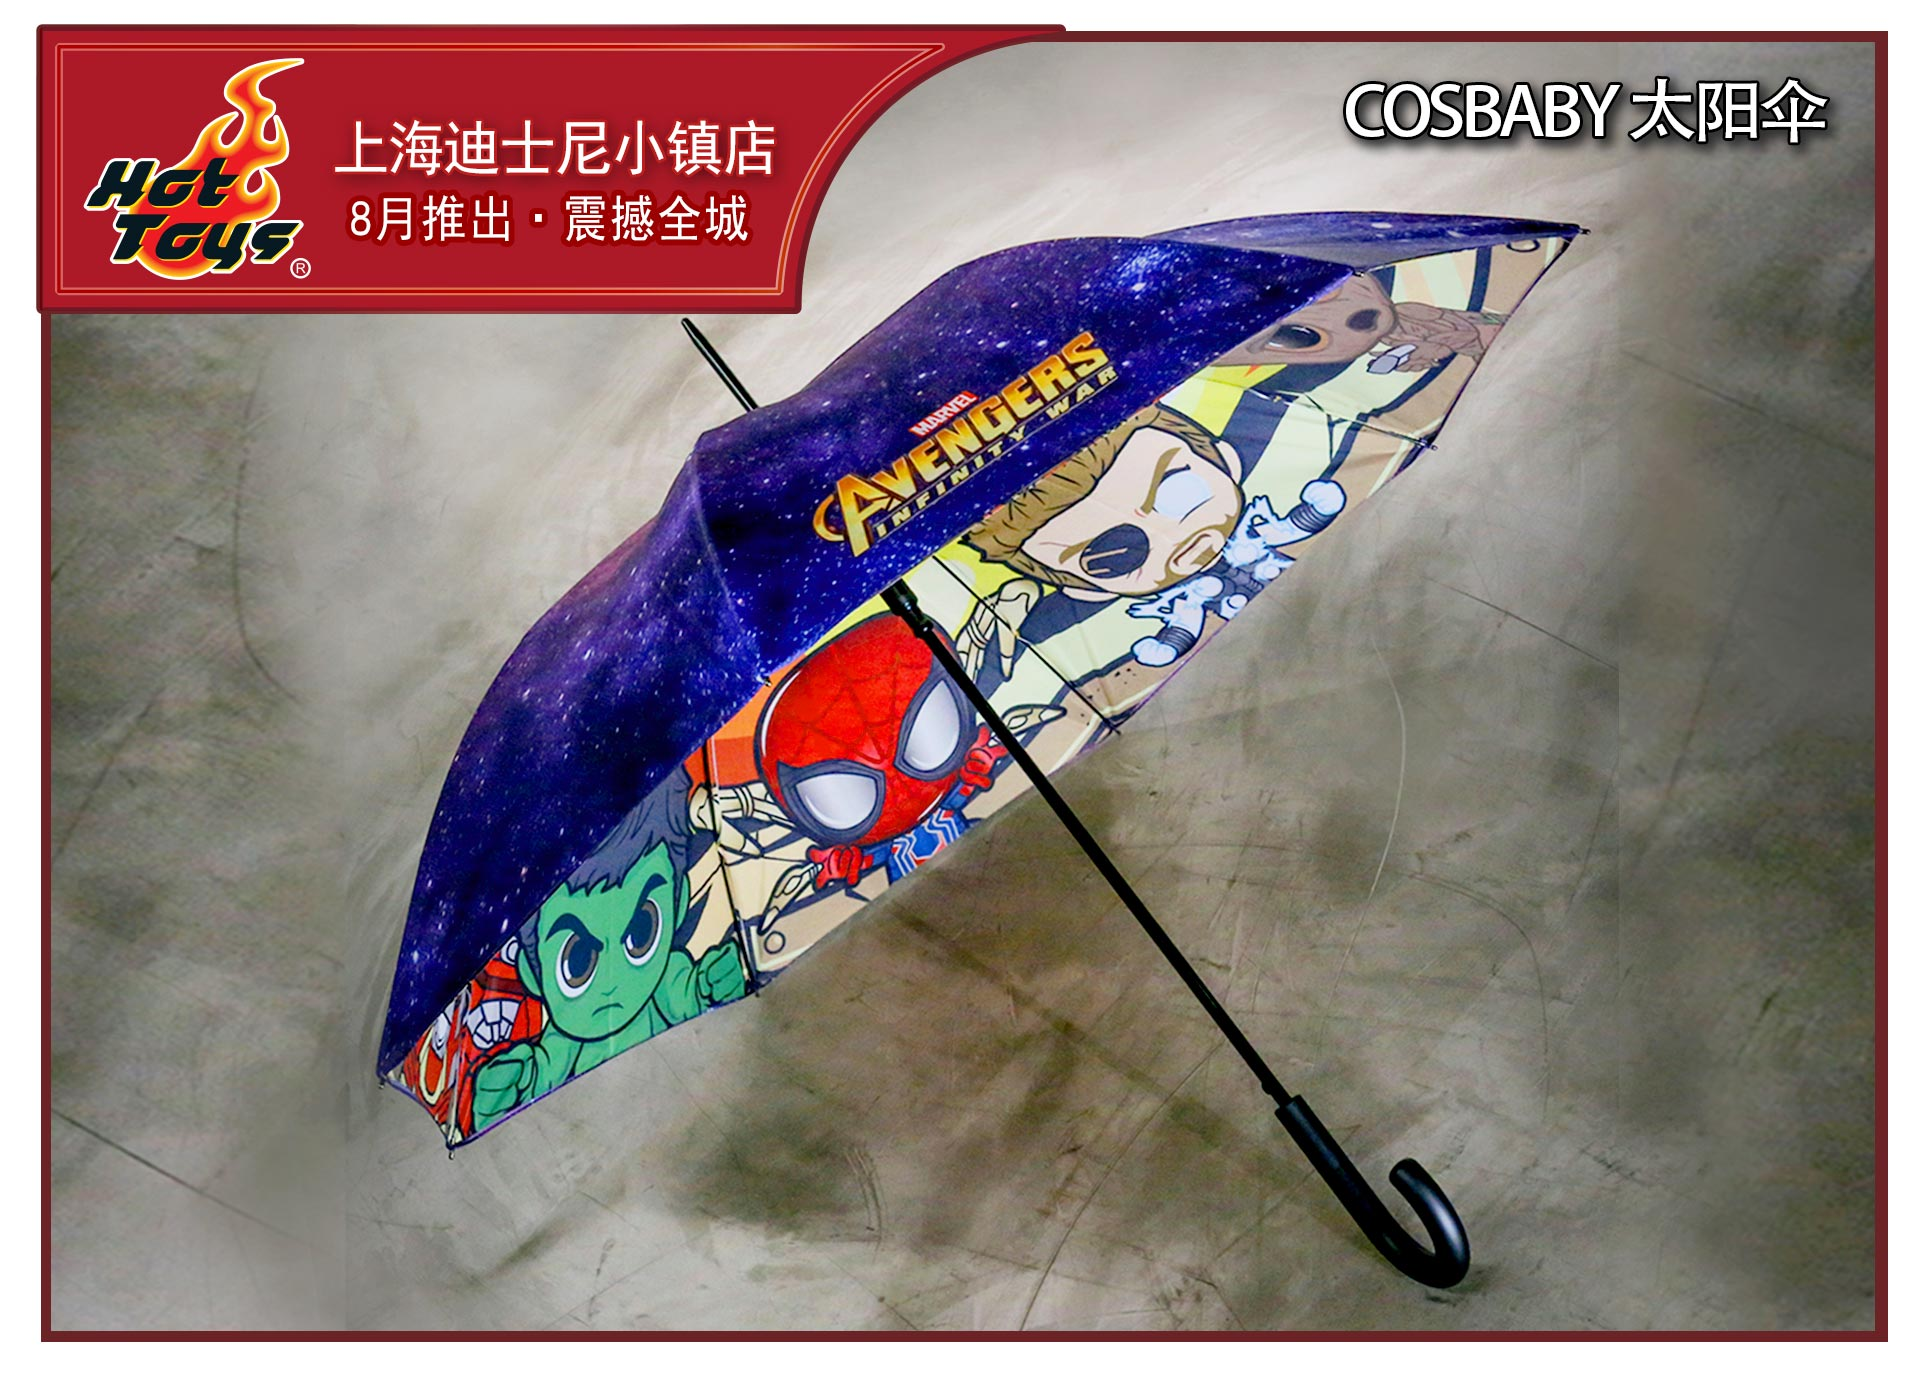 COSBABY太阳伞